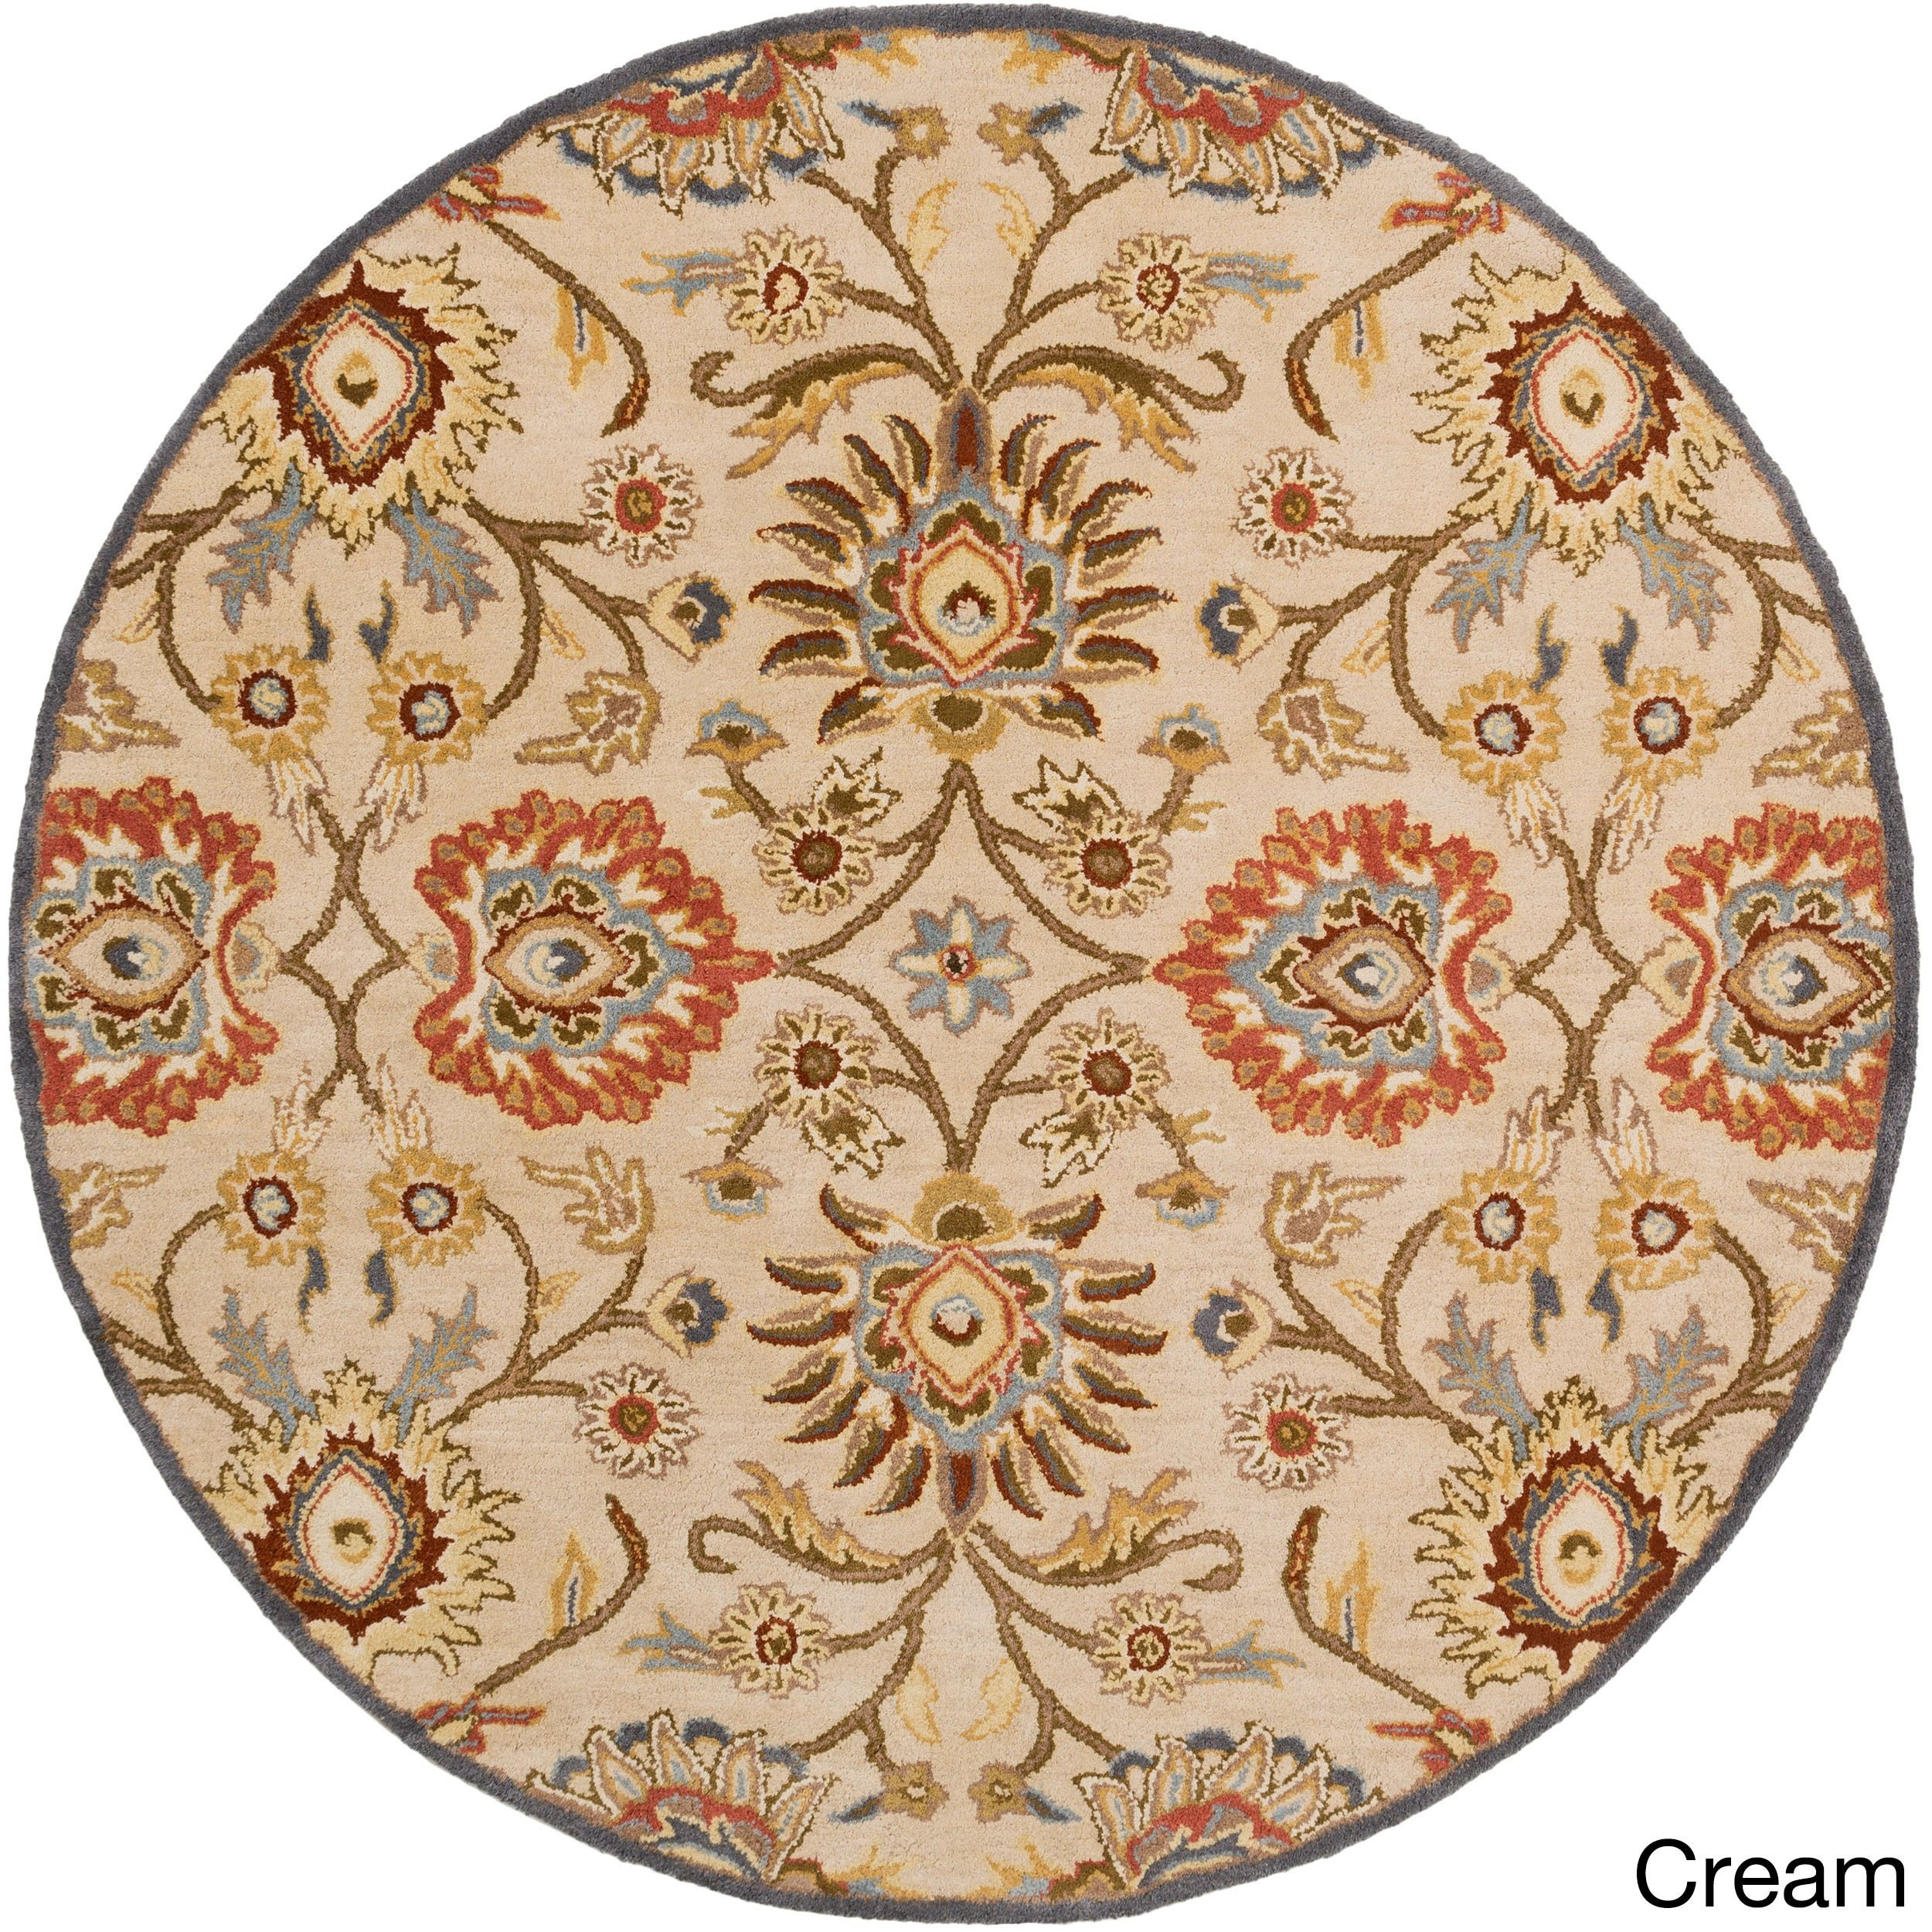 Hand Tufted Wool Rug 4 Round Cream Blue Size 4 Wool Area